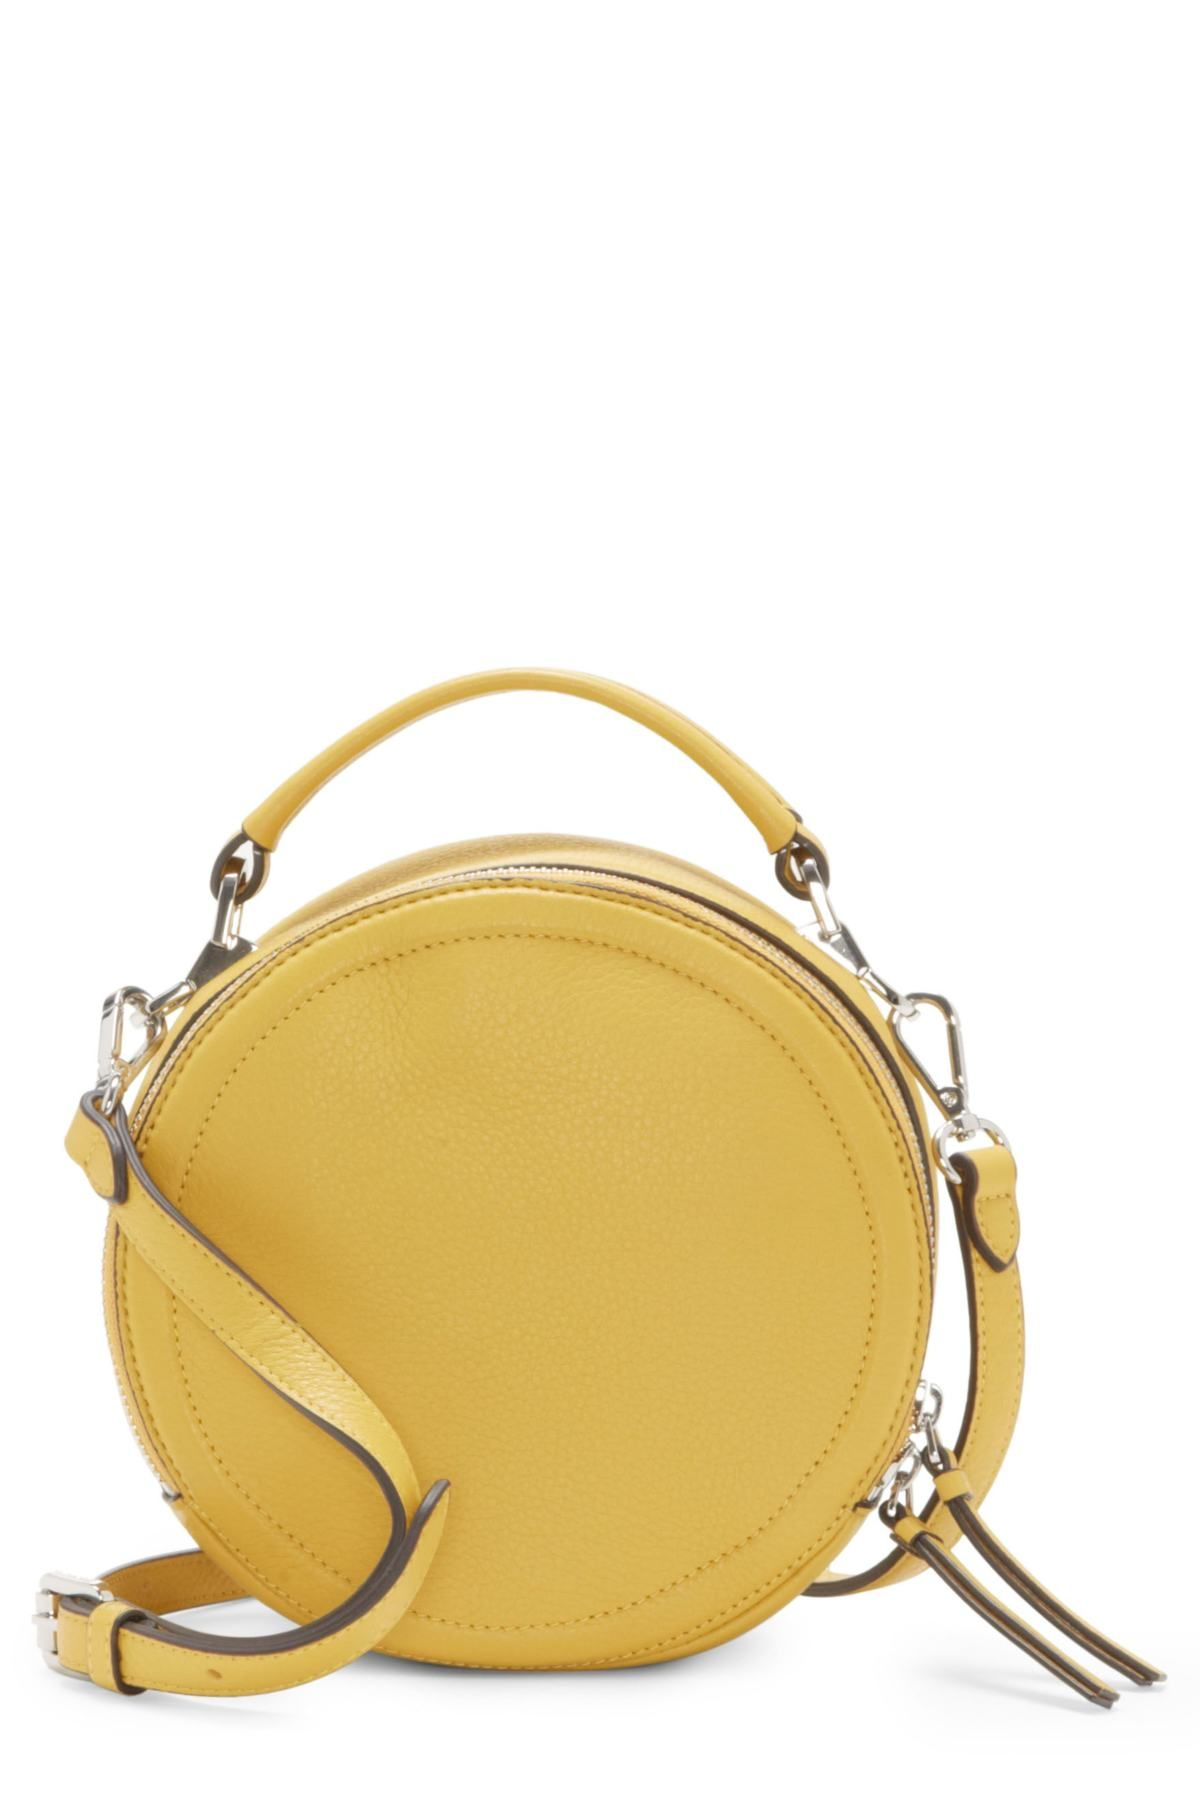 9aaf2bc6c Vince Camuto - Bray Leather Crossbody Bag is now 53% off. Free Shipping on  orders over $100.